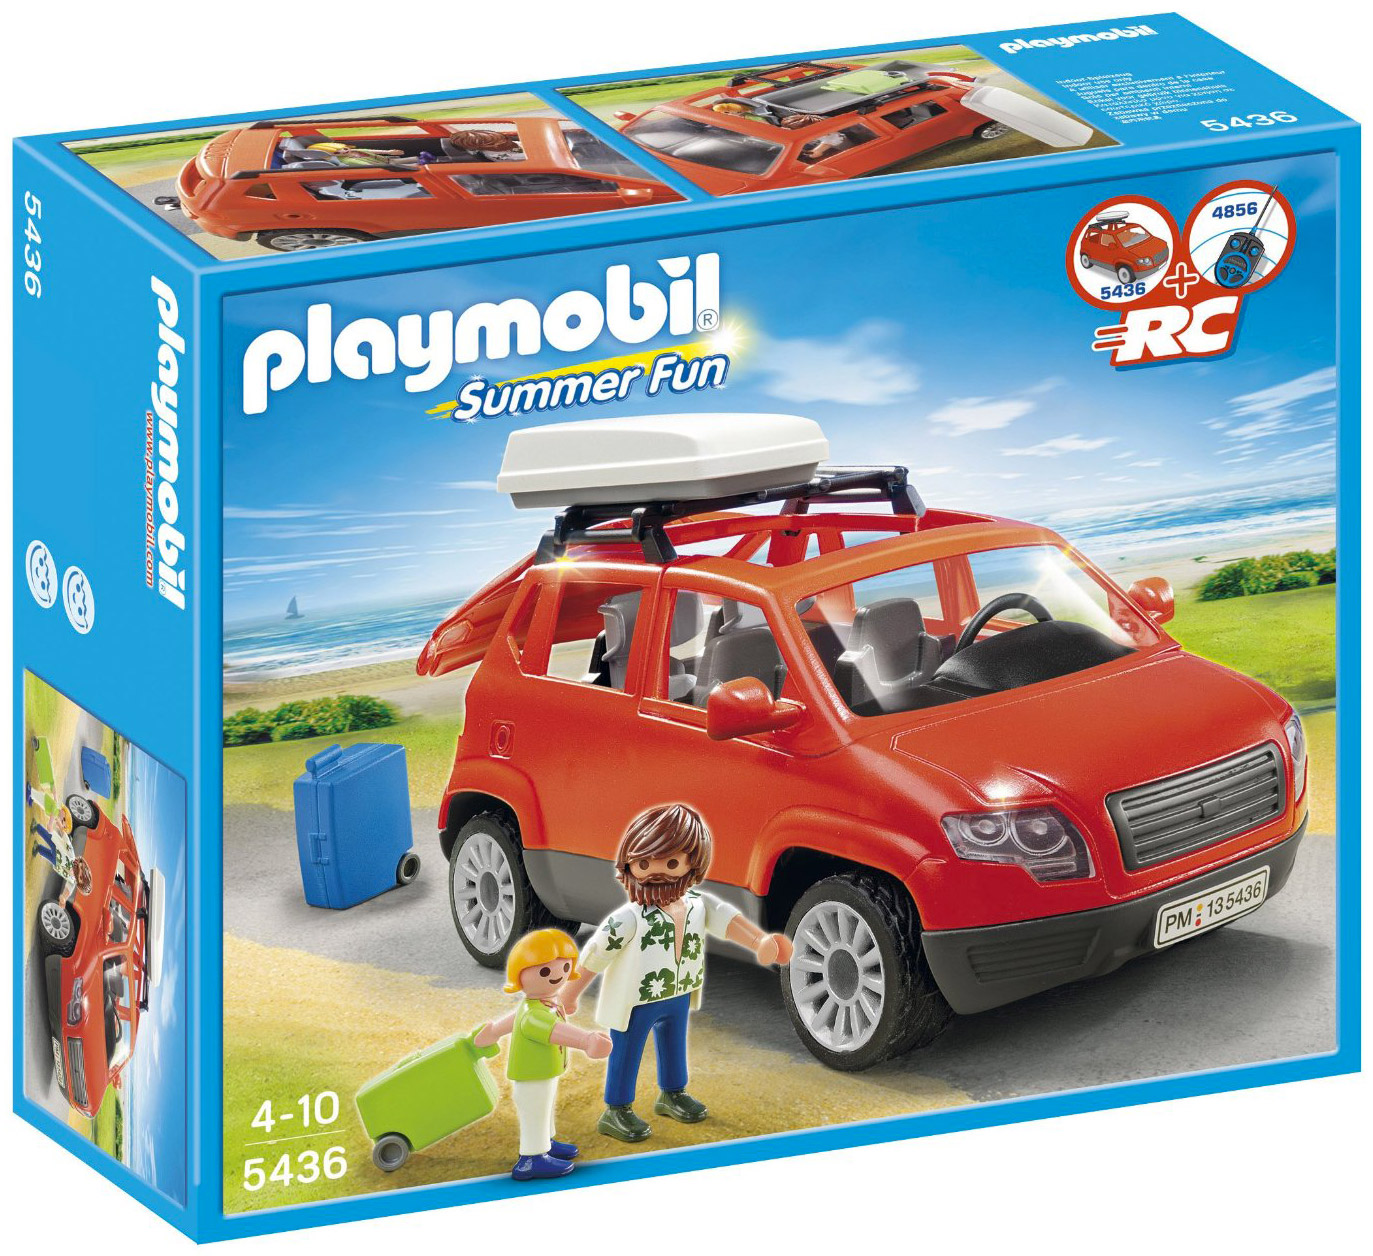 playmobil summer fun 5436 pas cher voiture avec coffre de toit. Black Bedroom Furniture Sets. Home Design Ideas